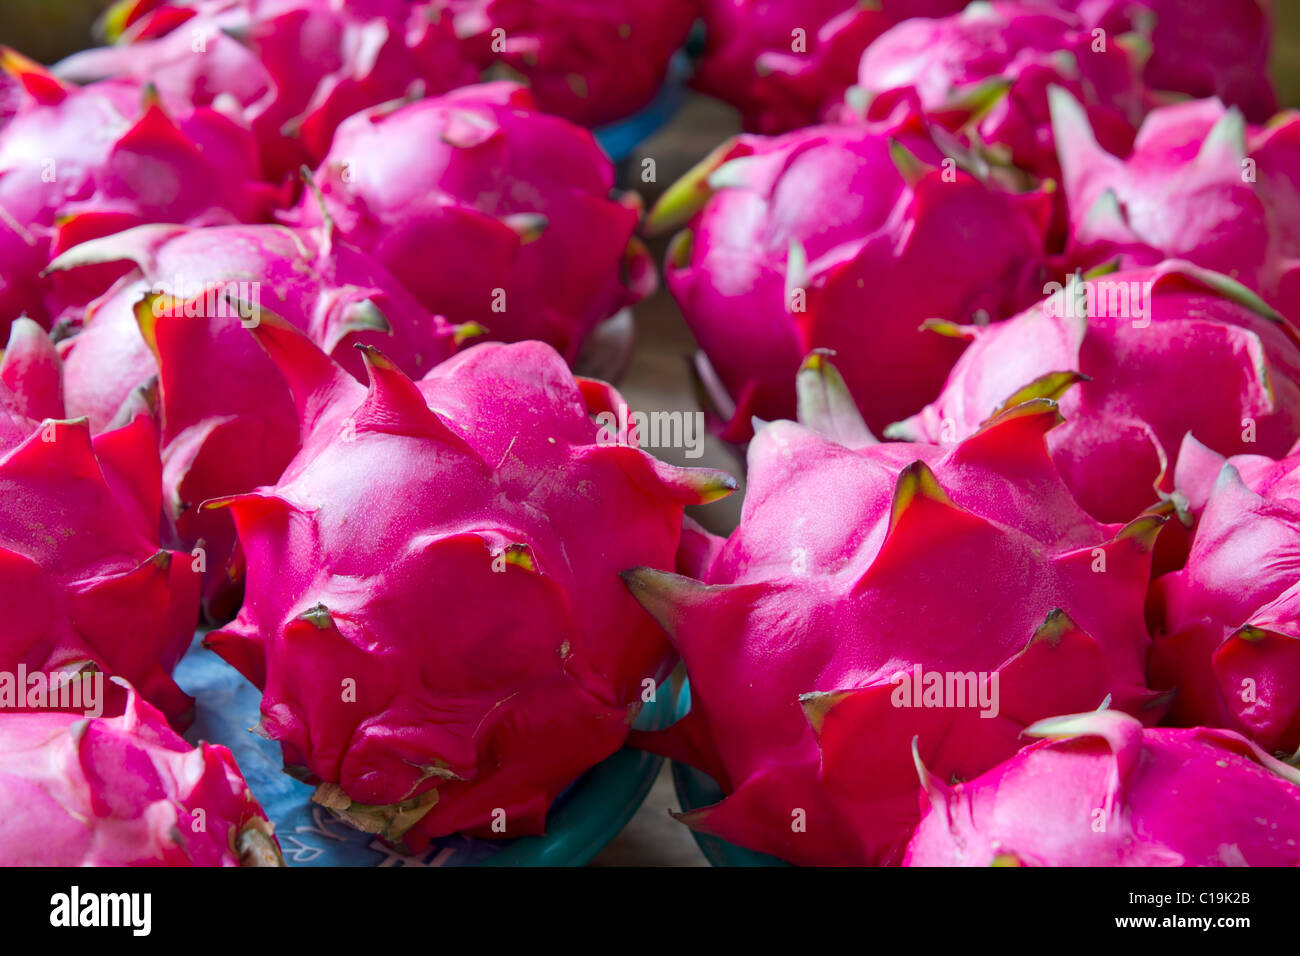 Dragon Fruit on Vendor Stand in Asian Country - Stock Image